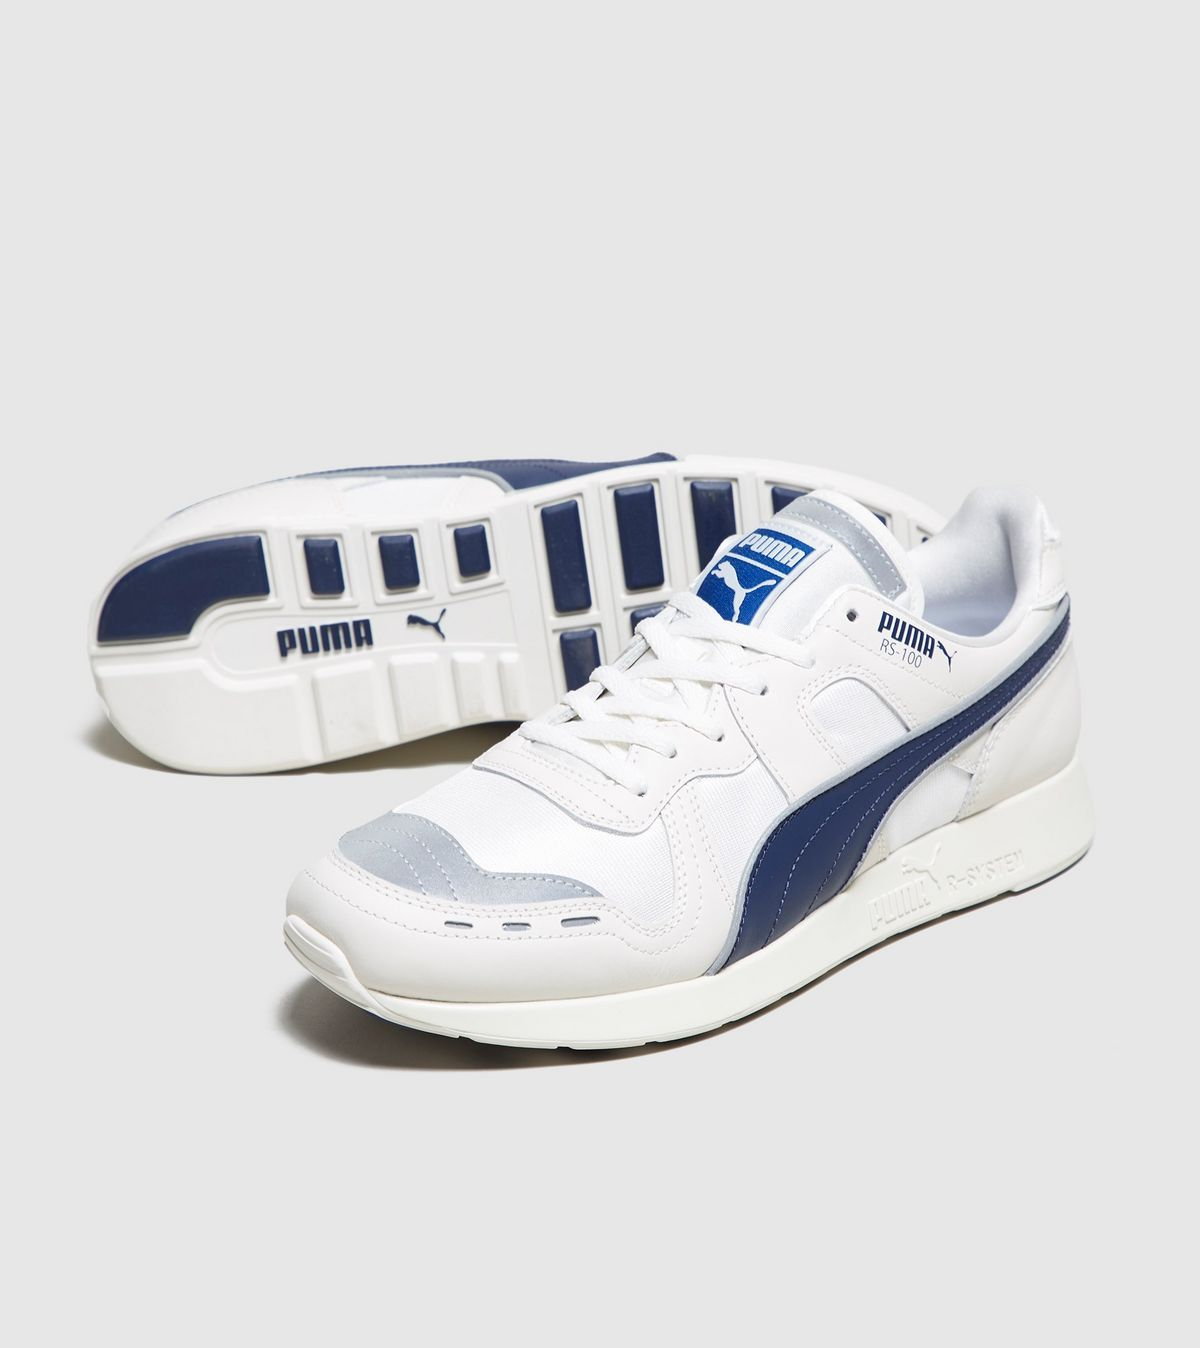 4f3d7be561360 Puma rs-100 pc in 2019 | Shoes | Grey pumas, Shoes, Sneakers